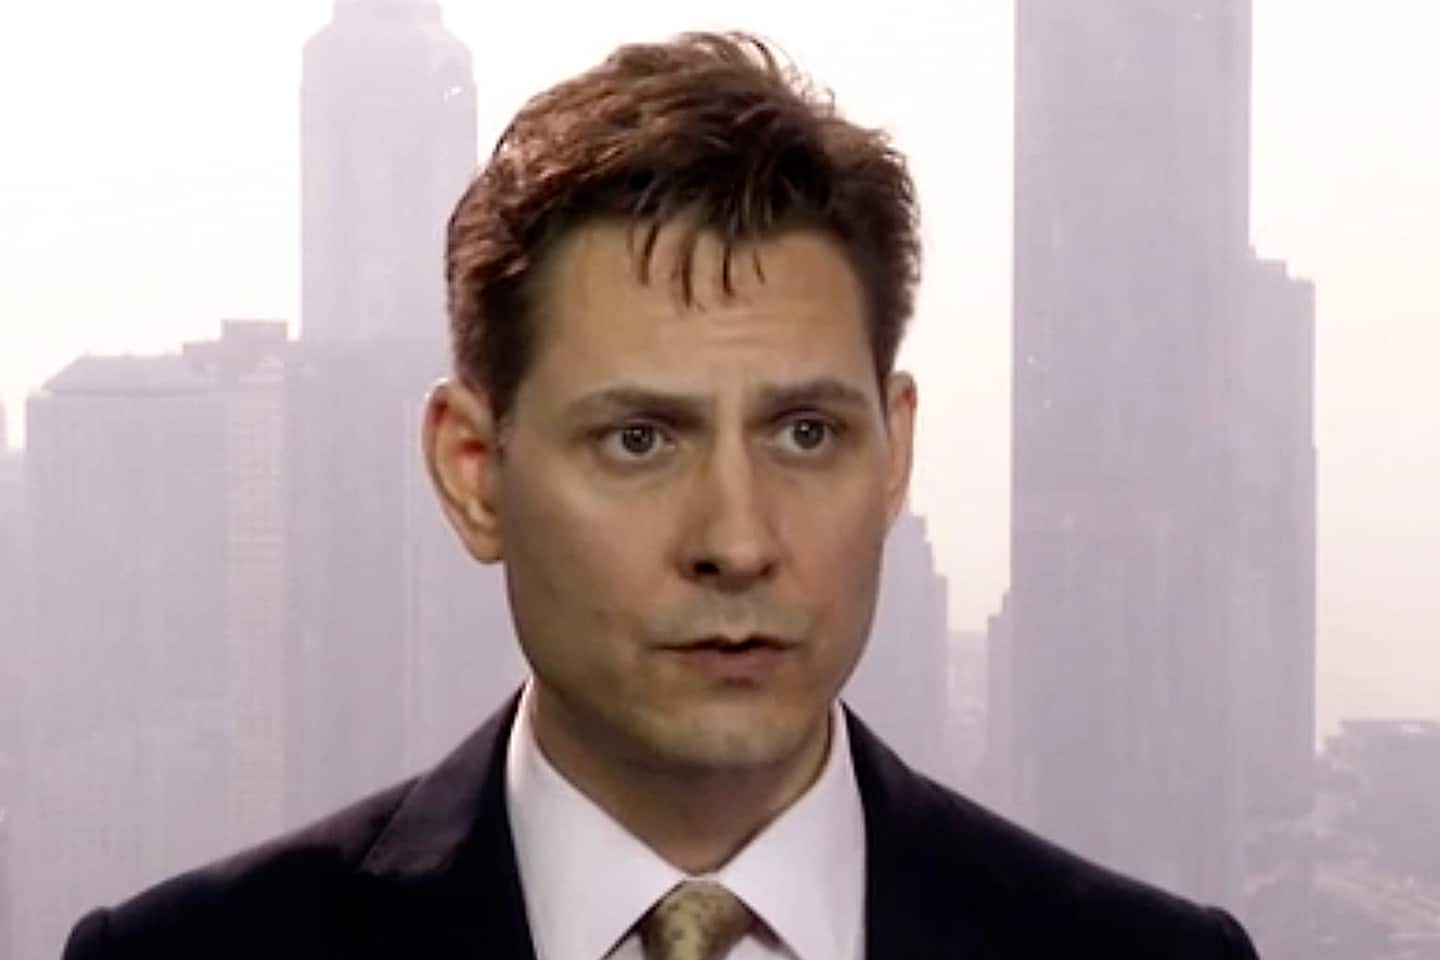 China puts Michael Kovrig on trial amid frigid ties with U.S. and Canada